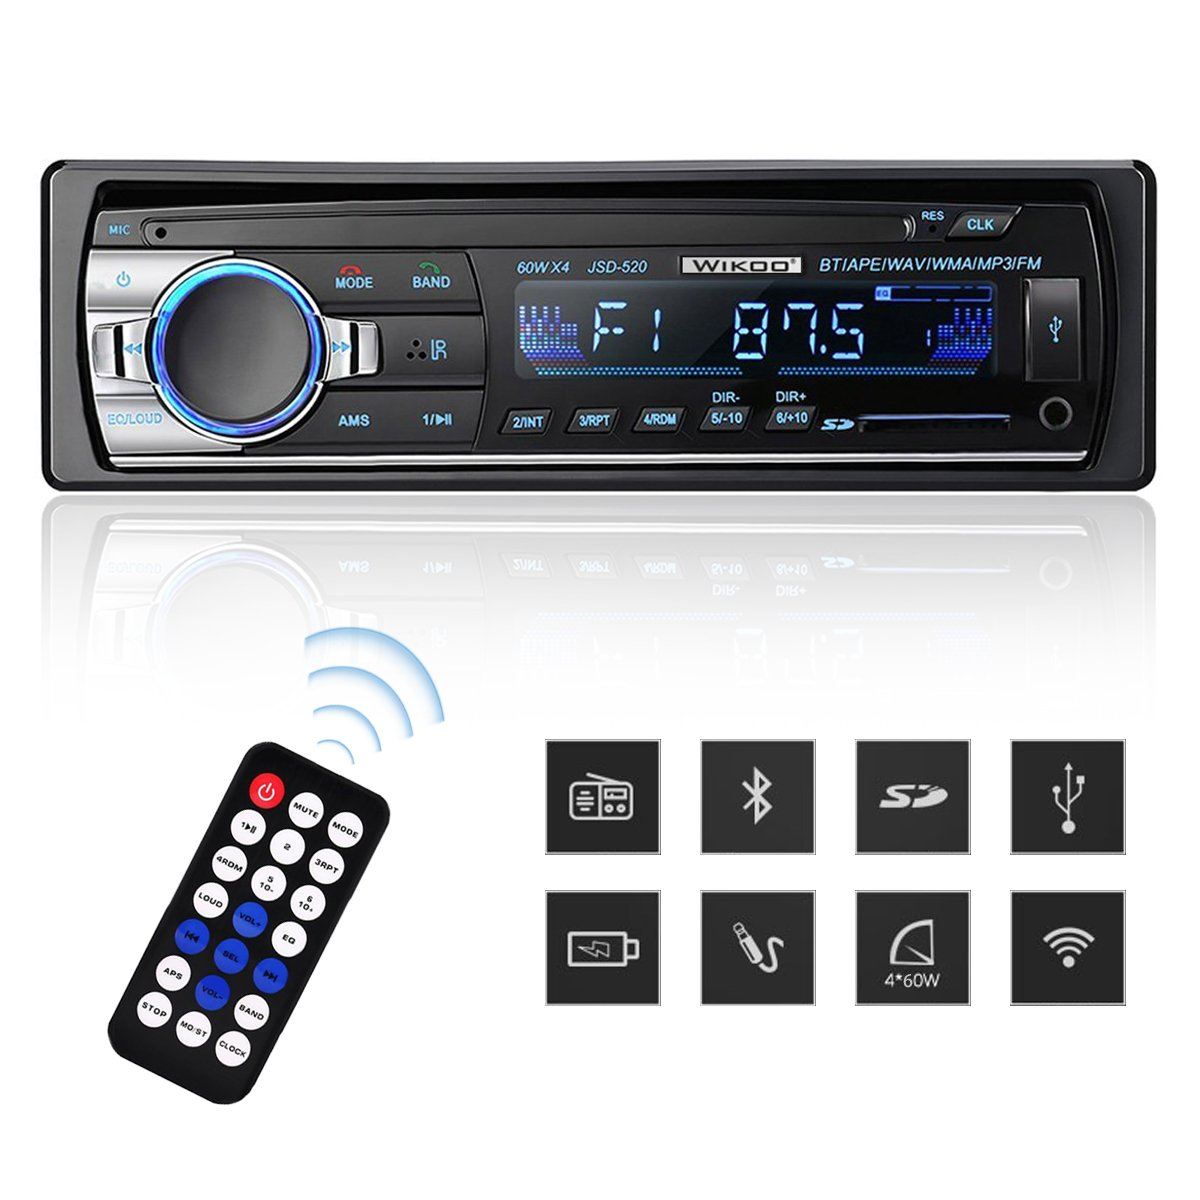 Digital Car Stereo - Wikoo Single-Din Bluetooth Car Stereo In Dash with Remote Control - Receivers USB/SD/Audio - MP3 Player/FM Radio, Supports Hands Free Calling by Wikoo (Image #1)